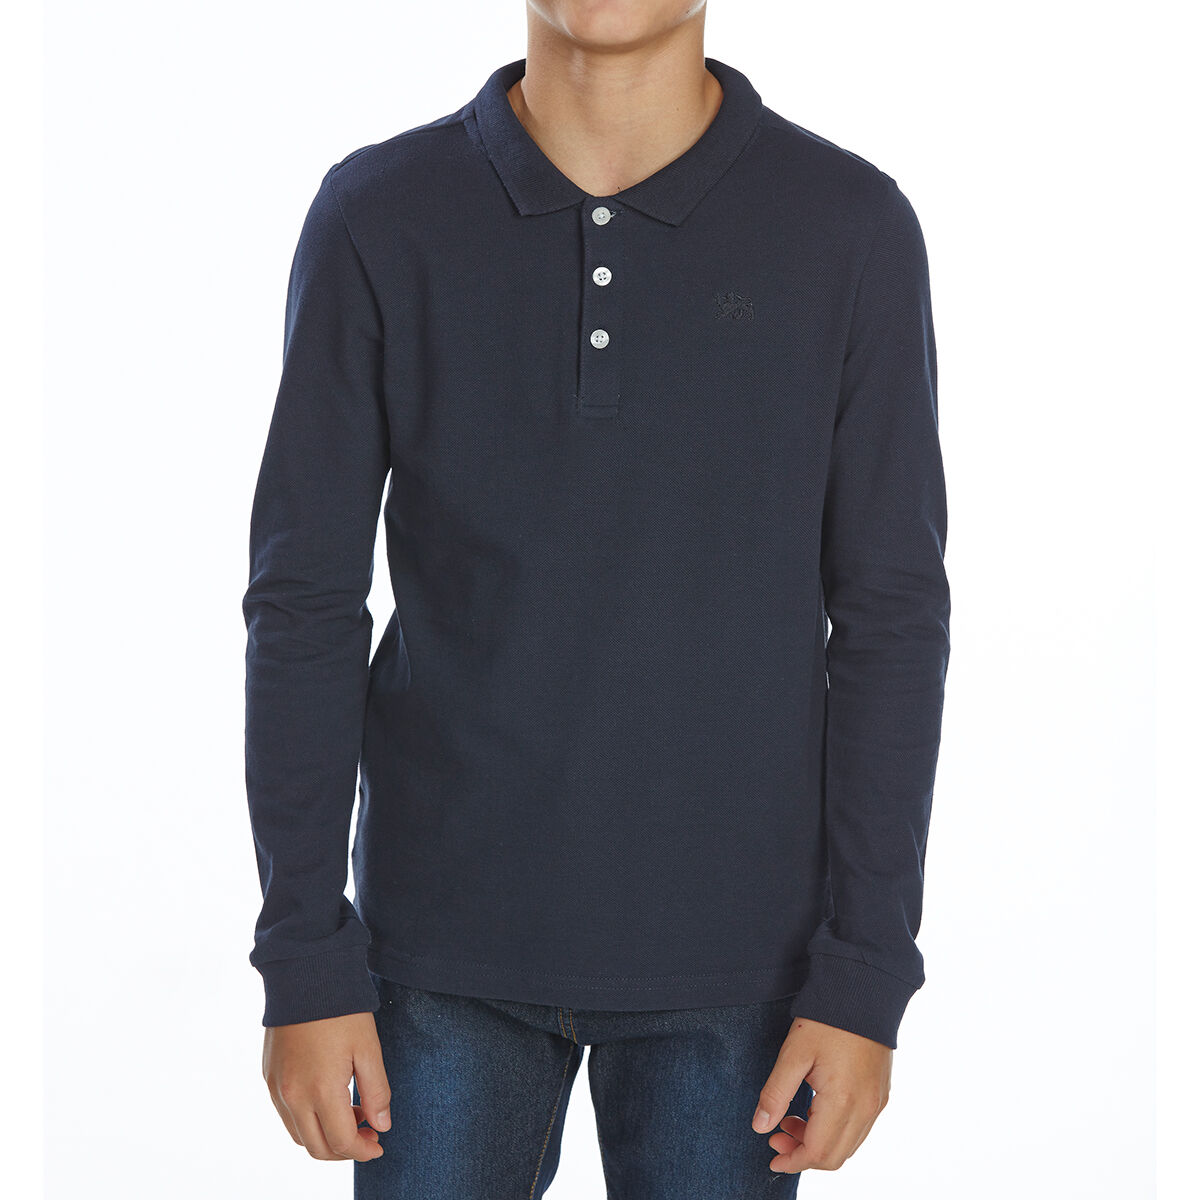 Minoti Big Boys' Long-Sleeve Polo Shirt - Blue, 12/13